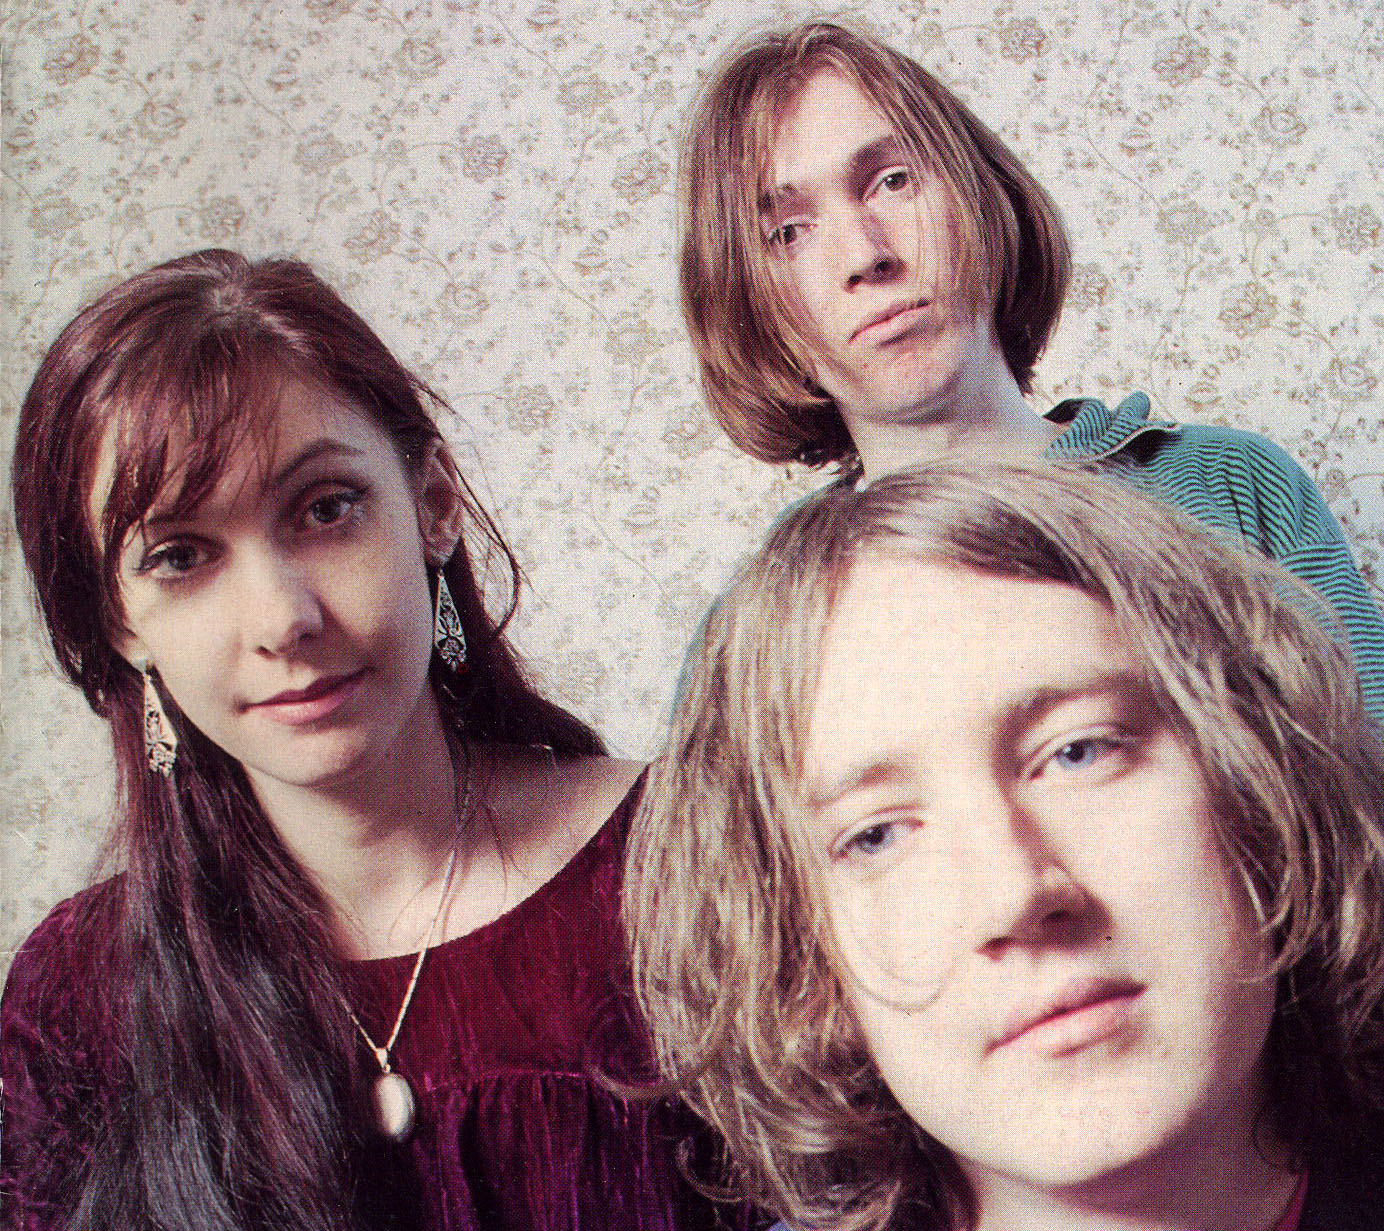 My Bloody Valentine Images Mbv HD Wallpaper And Background Photos